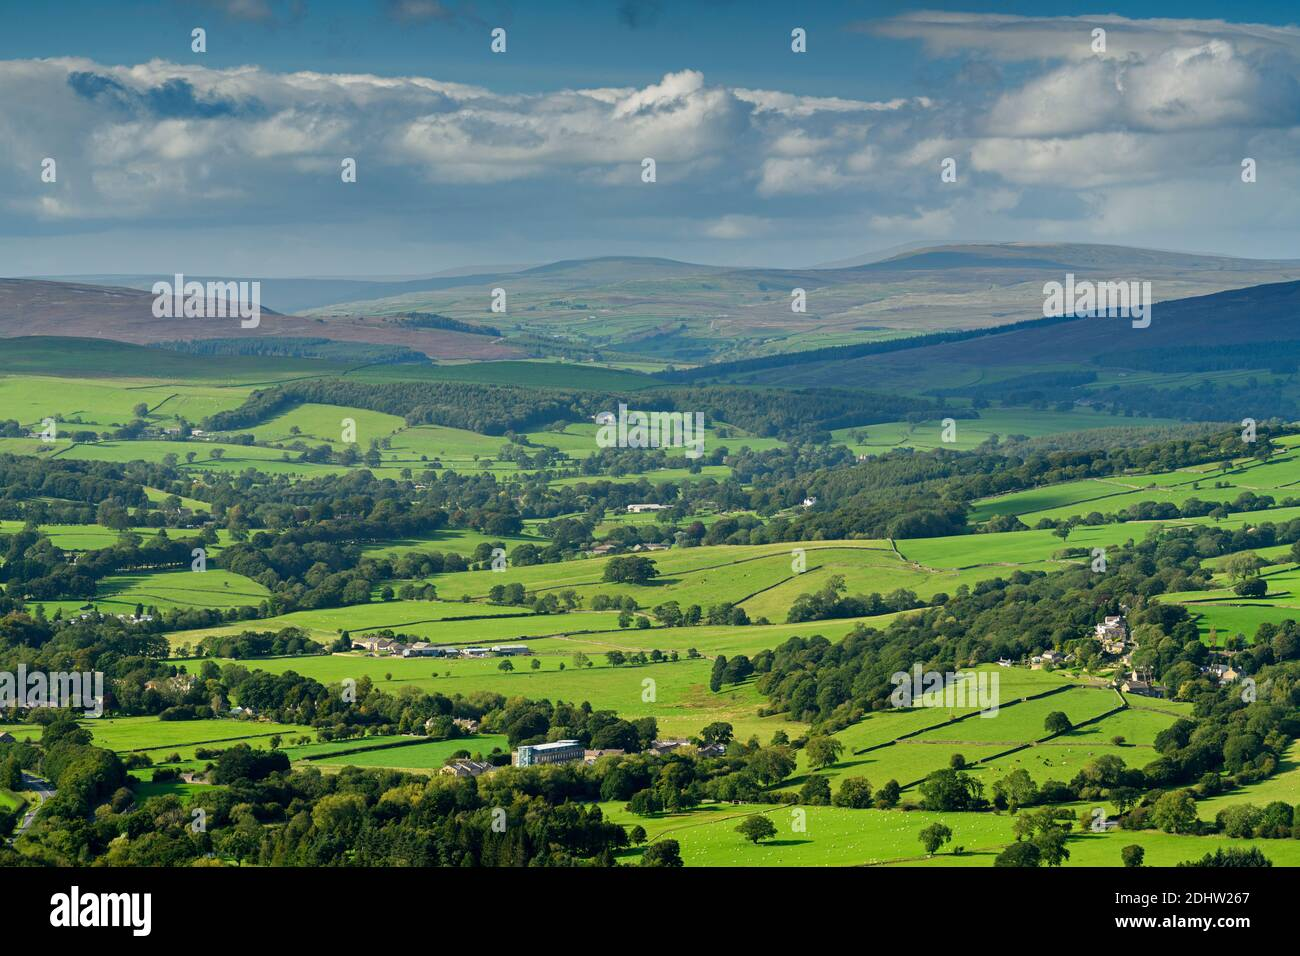 Scenic countryside view of Wharfedale (wide green valley, rolling hills, high upland fells, sunlight on land, blue sky) - West Yorkshire, England, UK. Stock Photo